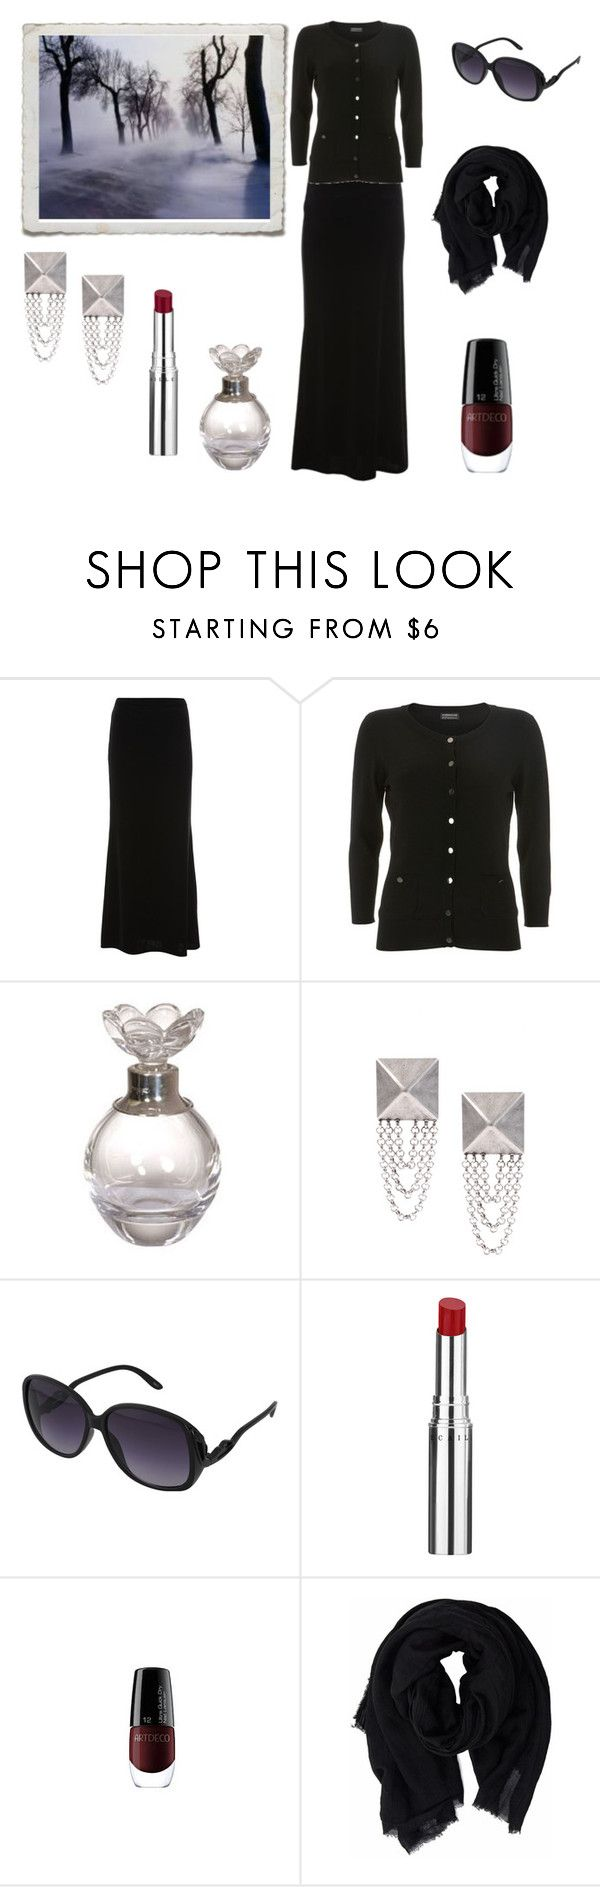 """Black winter day"" by rougenoir666 ❤ liked on Polyvore featuring DANNIJO, Forever 21, Chantecaille, earrings, winter, velvet maxi skirt, black cardigan, perfume, artdeco nailpolish and lipstick"